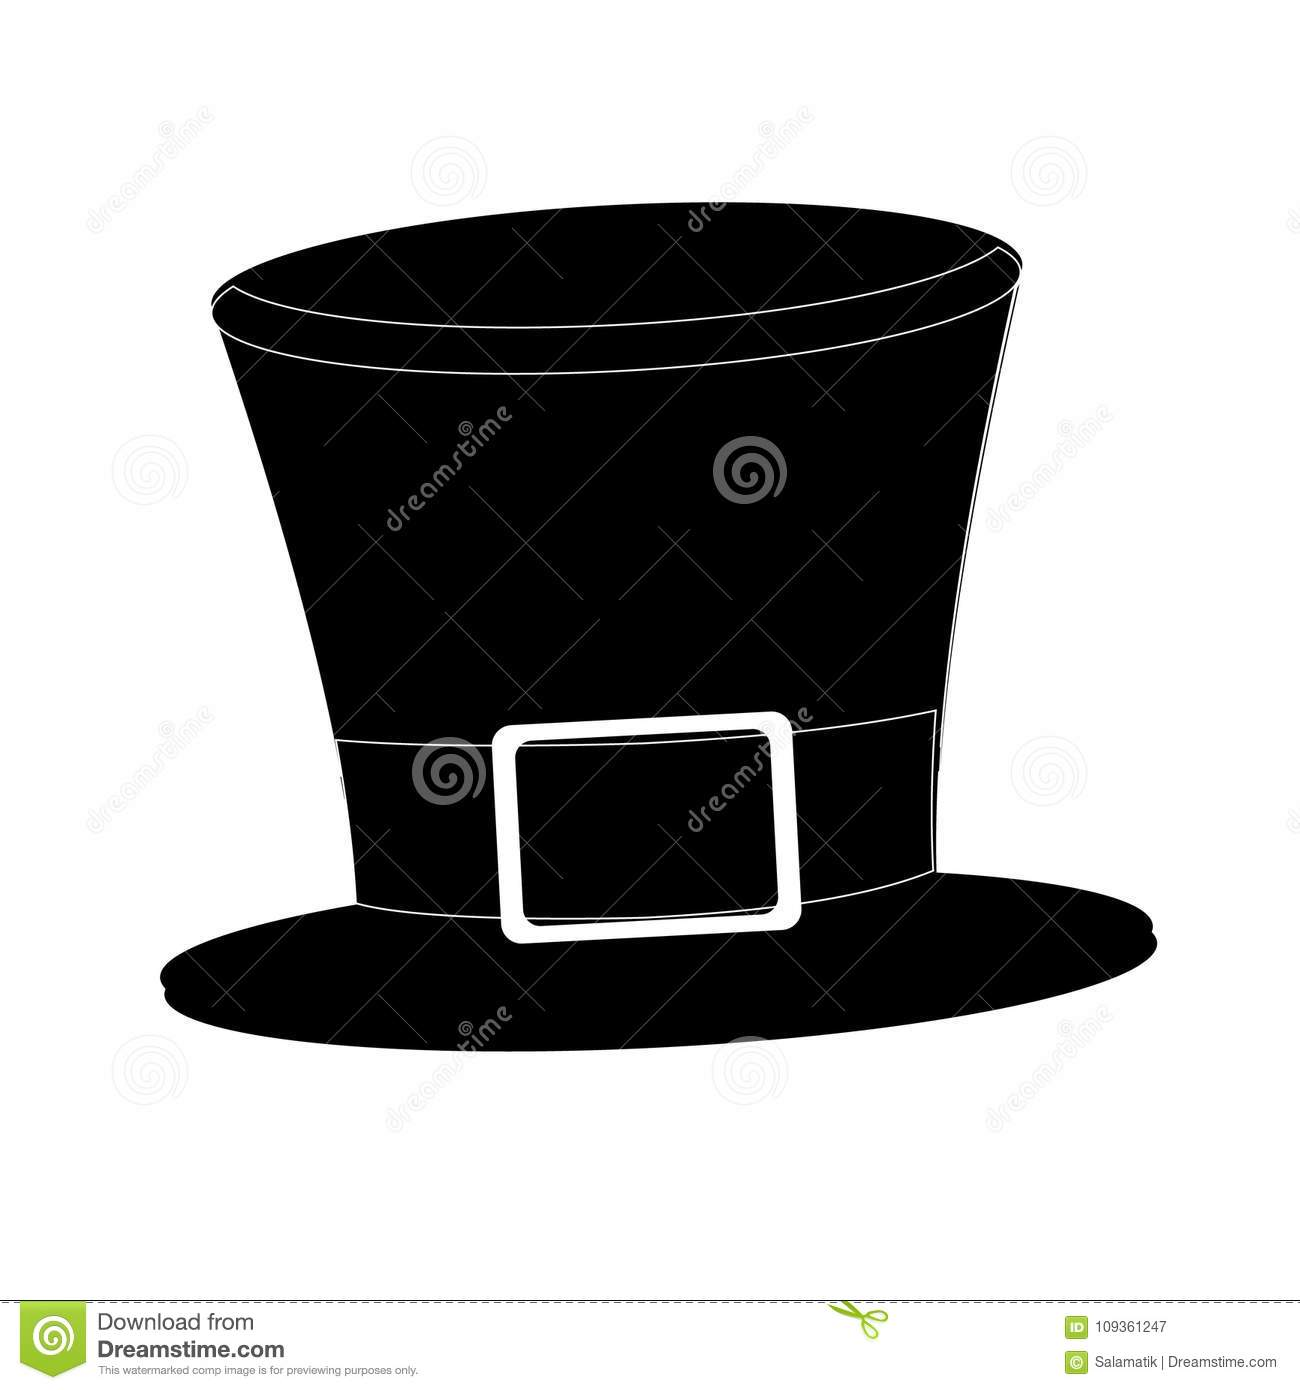 Tophat. Isolated on white background. Black silhouette cylinder. Vintage top hat. Vector.